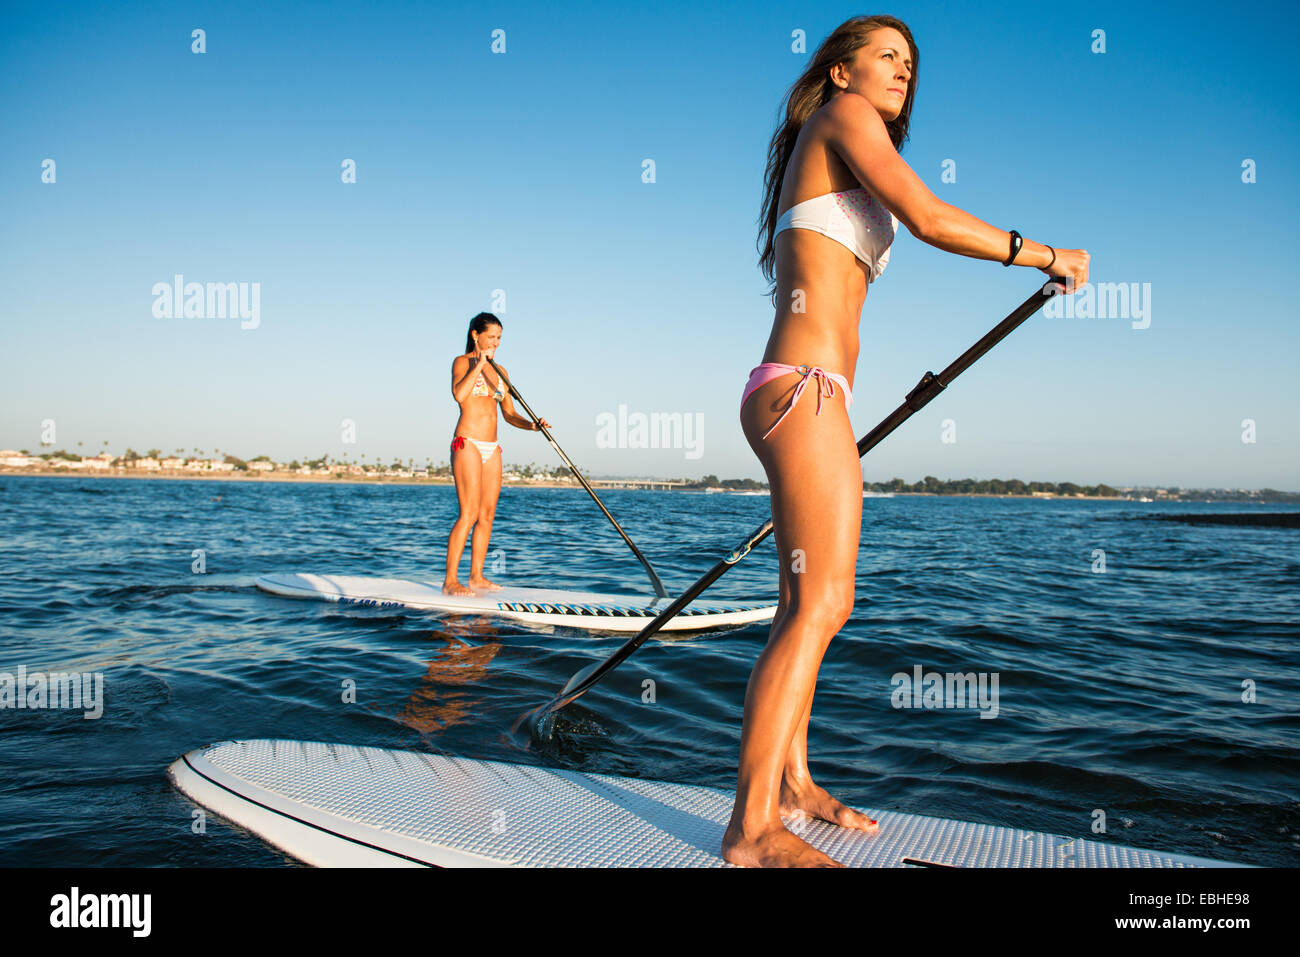 Two women stand up paddleboarding, Mission Bay, San Diego, California, USA - Stock Image